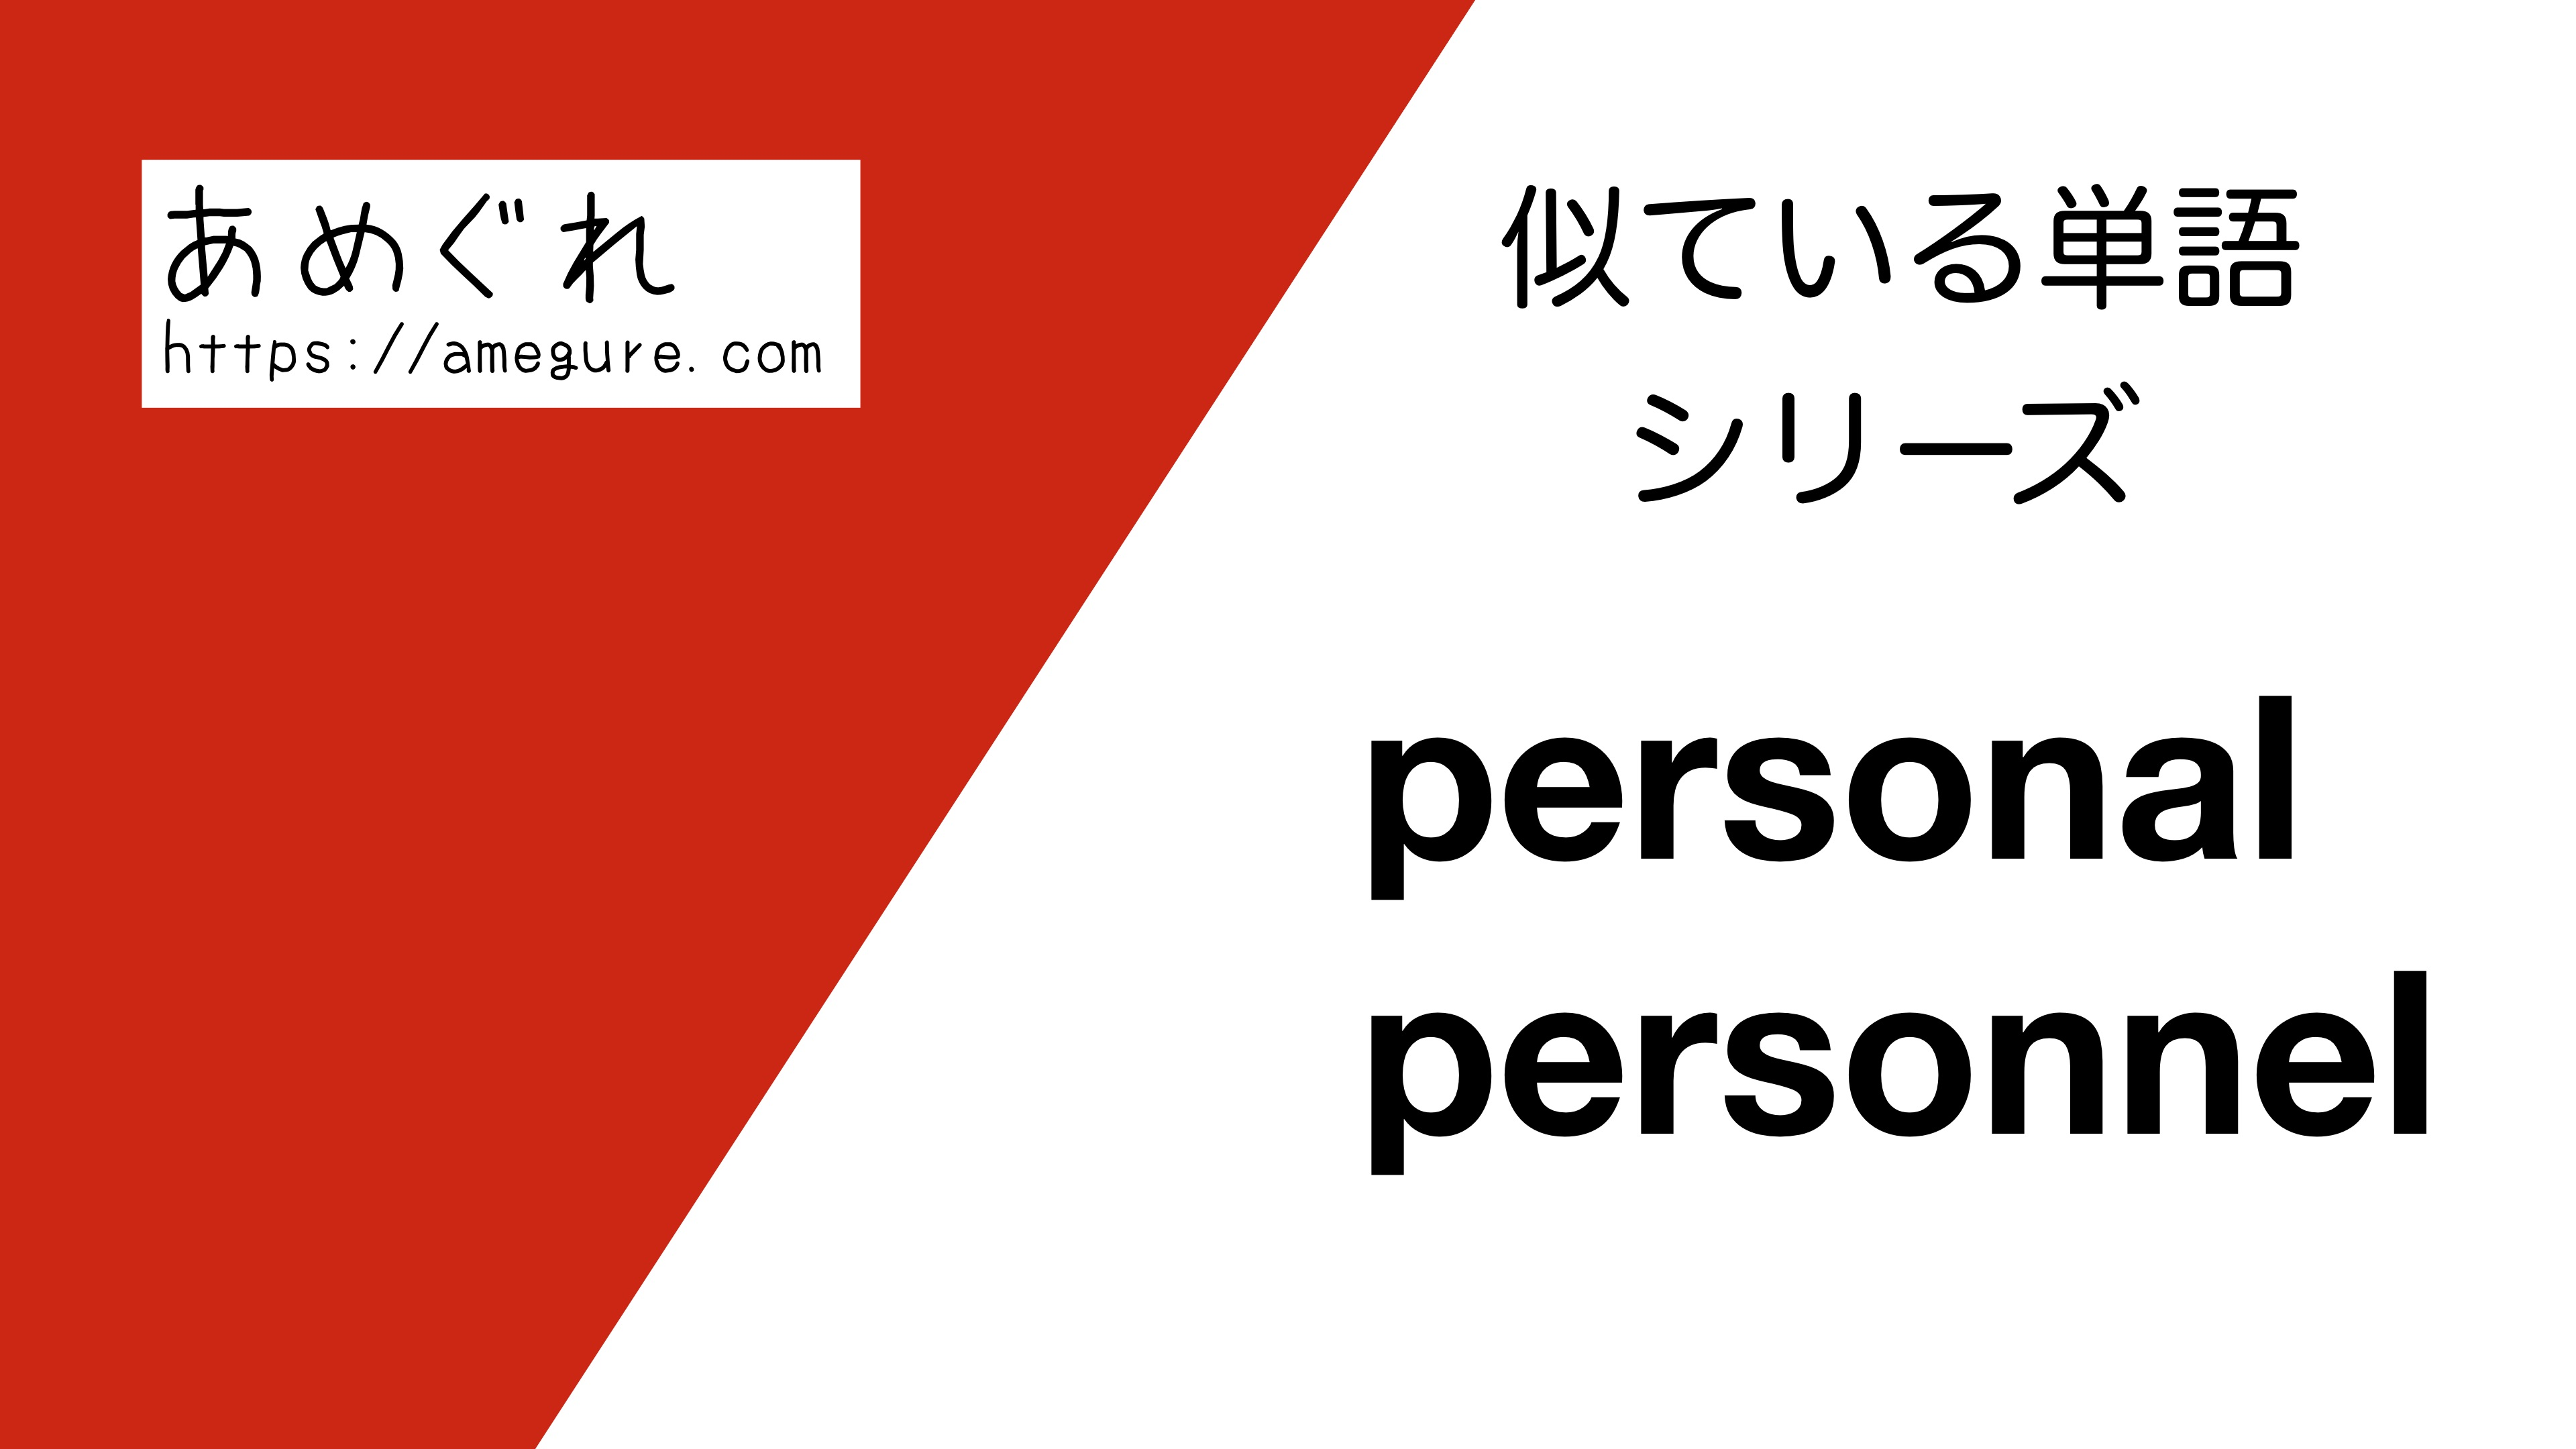 personal-personnel違い